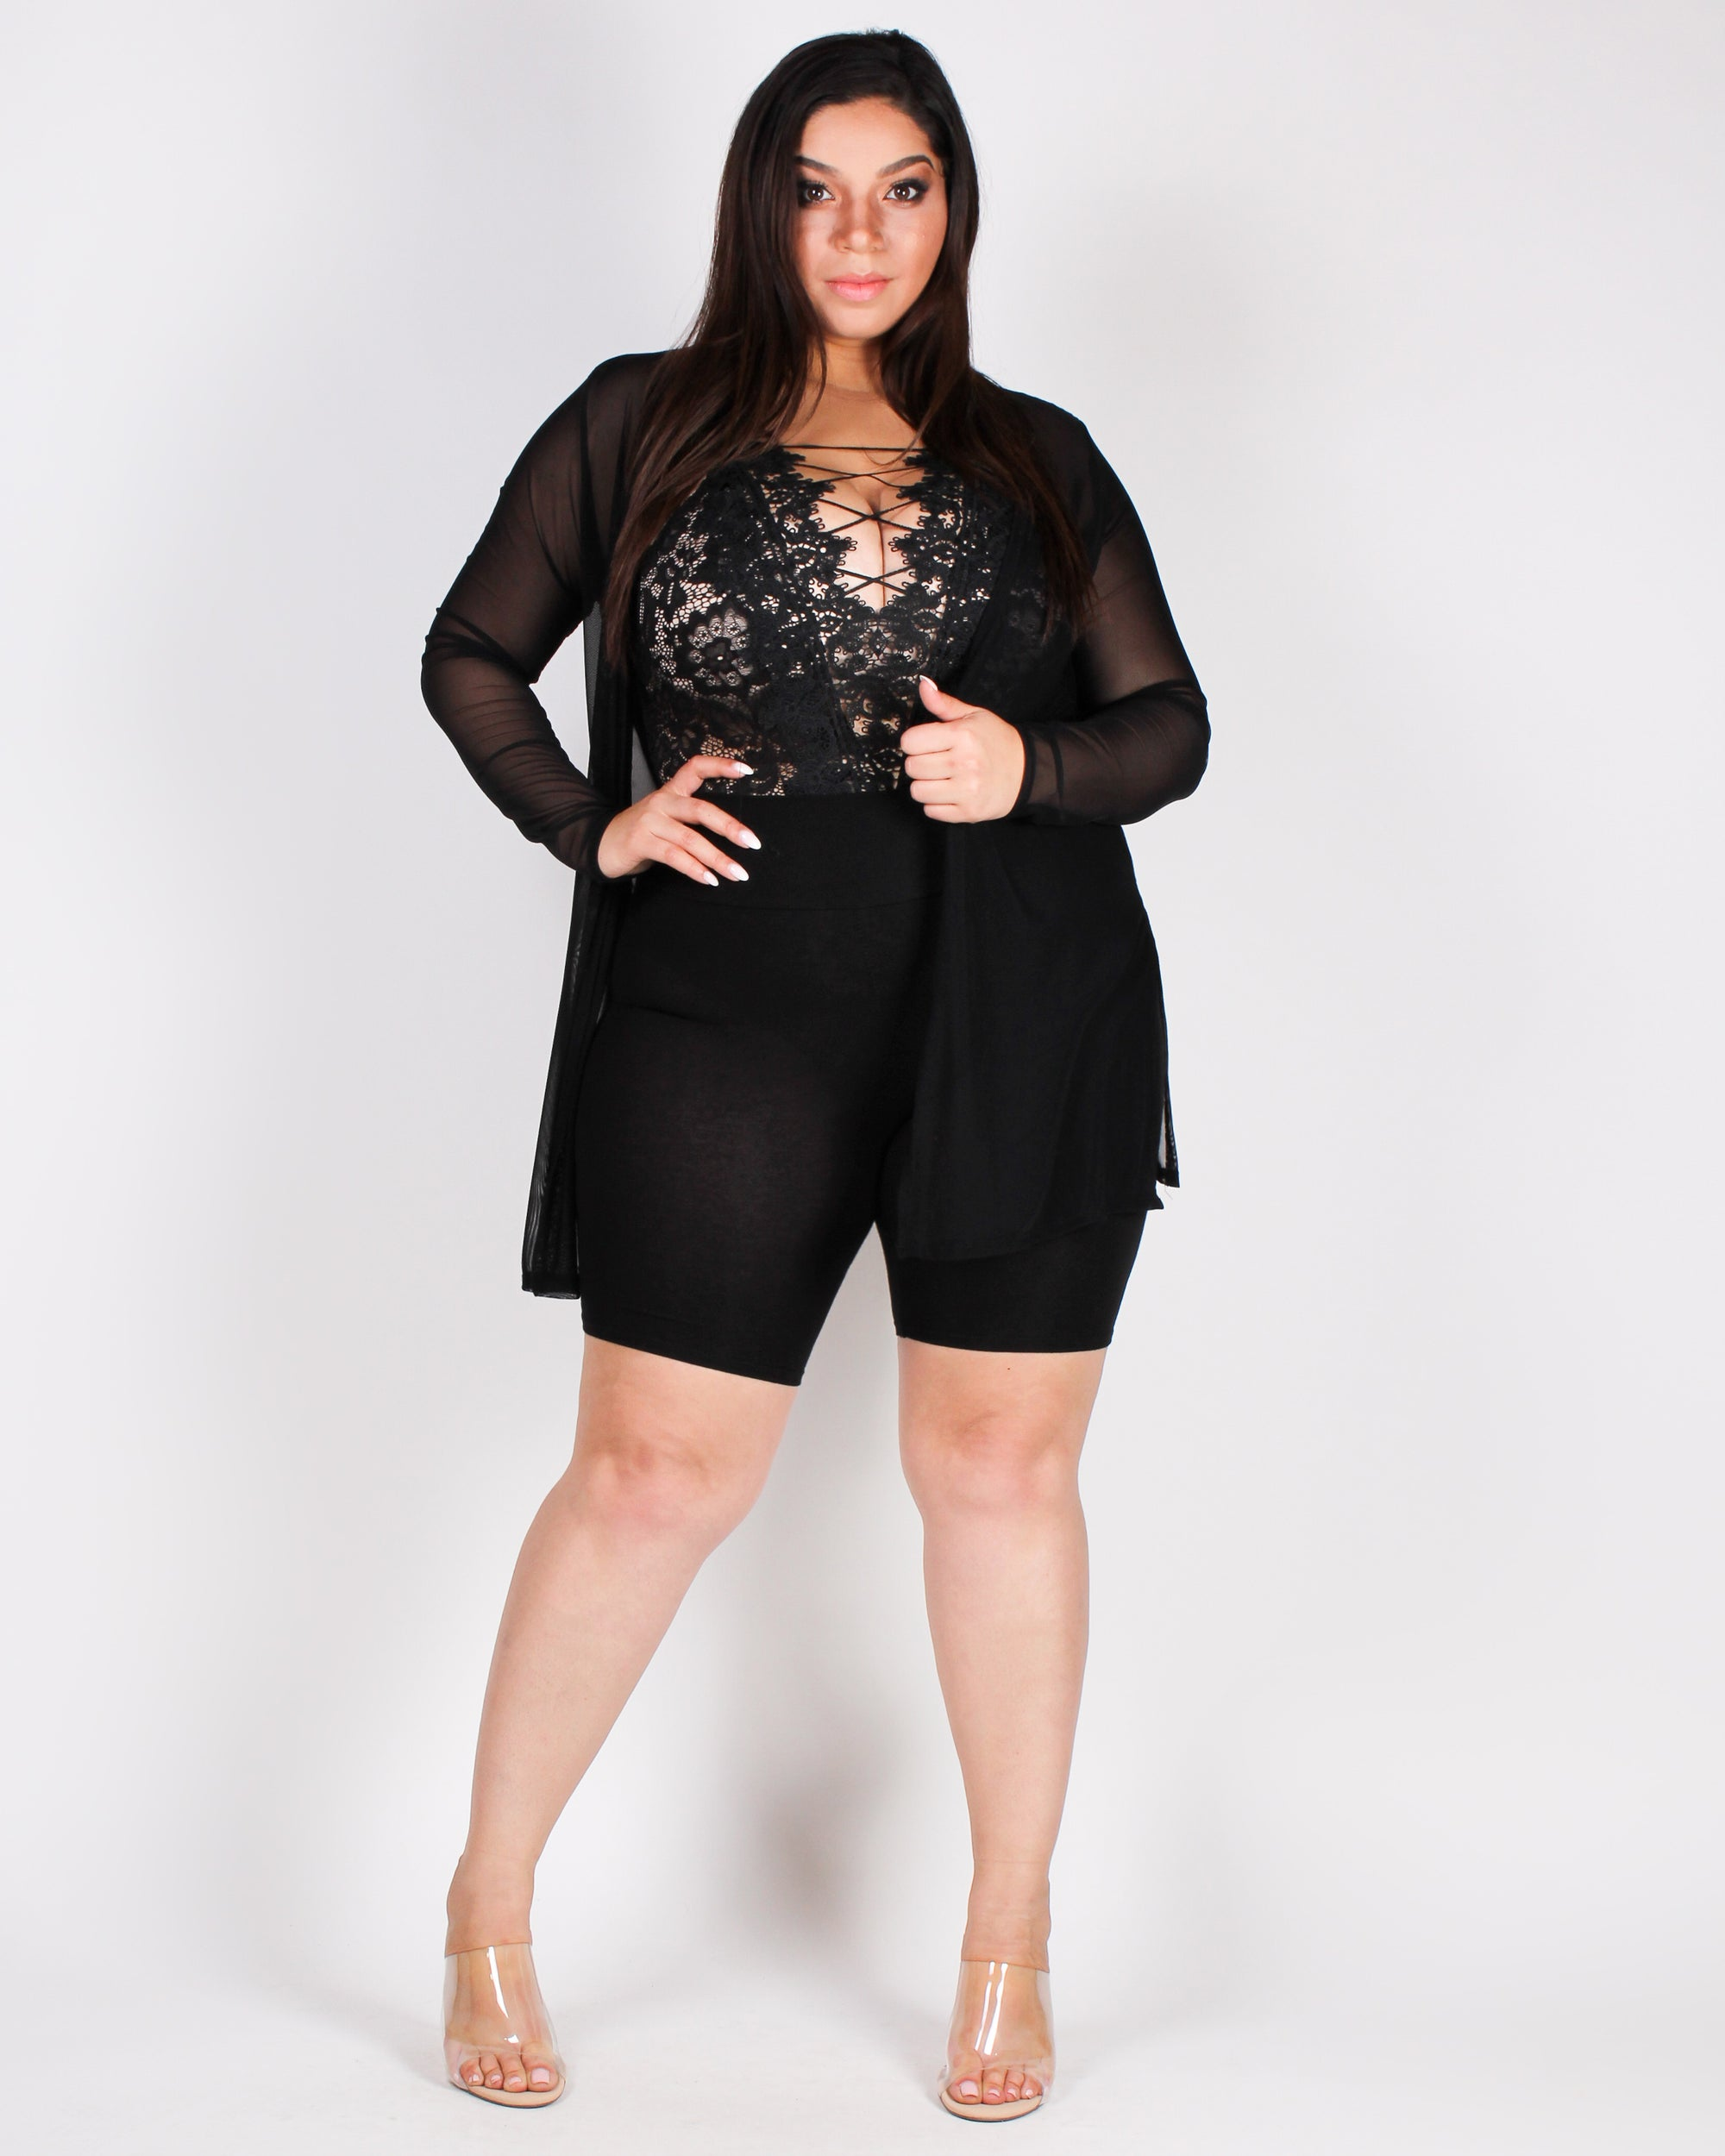 Own Your Hot Mesh Plus Cardigan (Black)